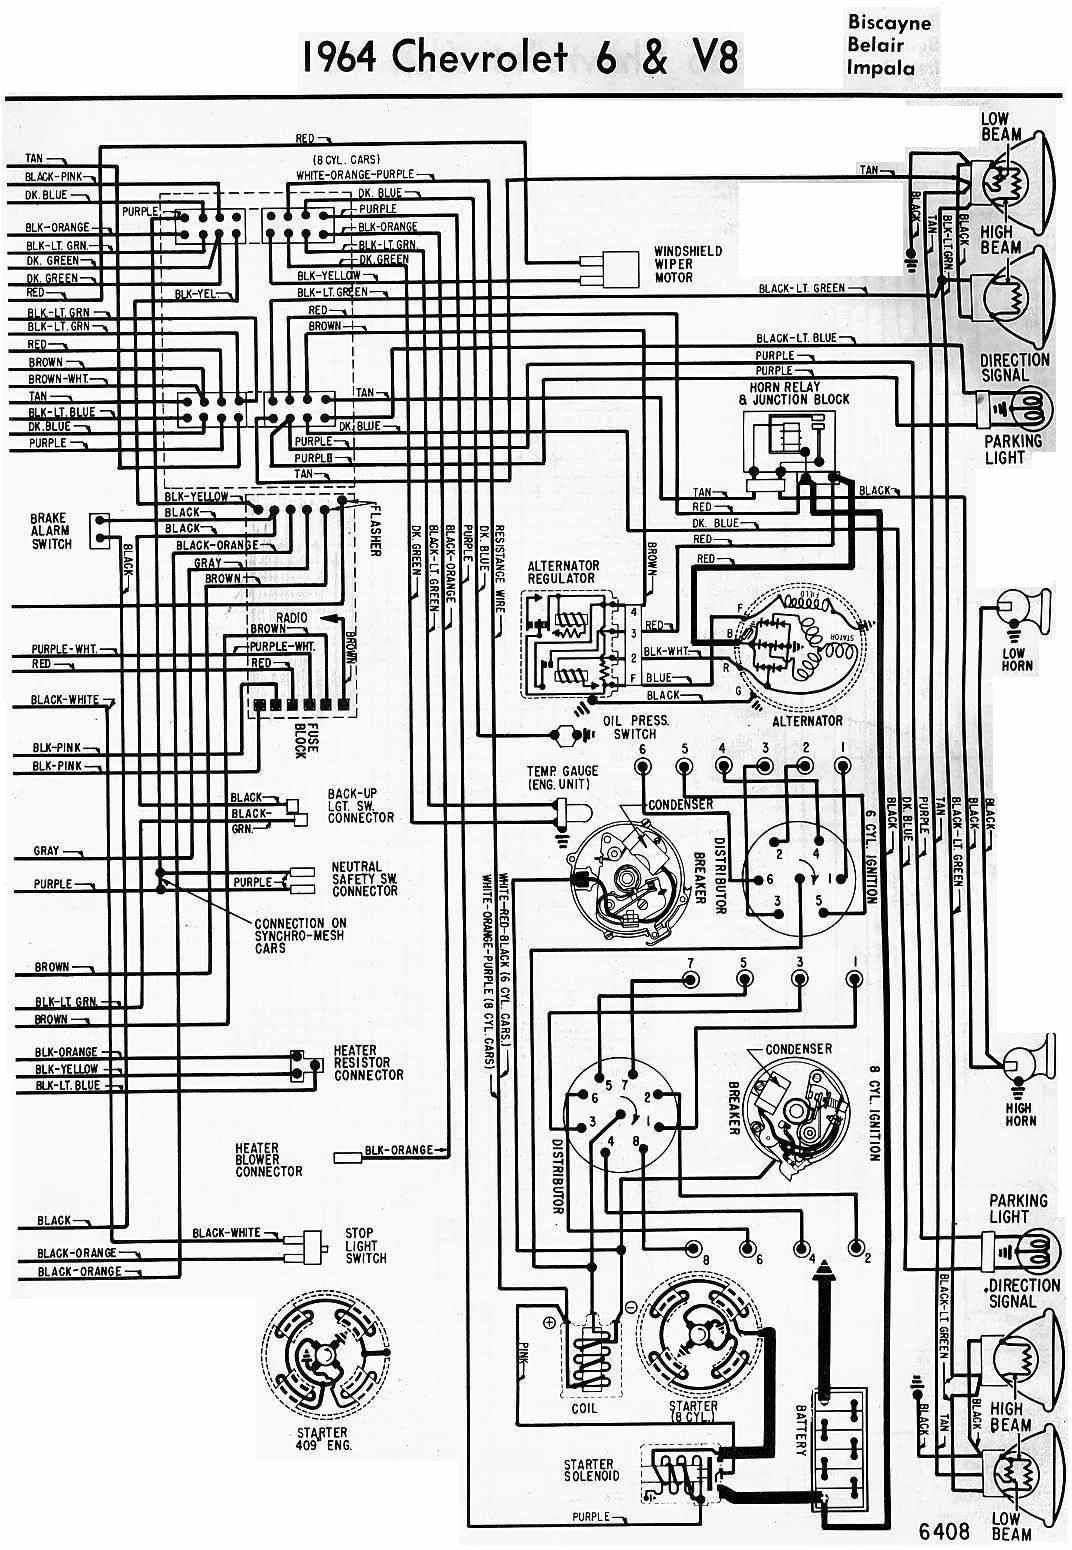 hight resolution of 1963 impala engine wiring diagram free download wiring diagram today 1963 impala engine wiring diagram free